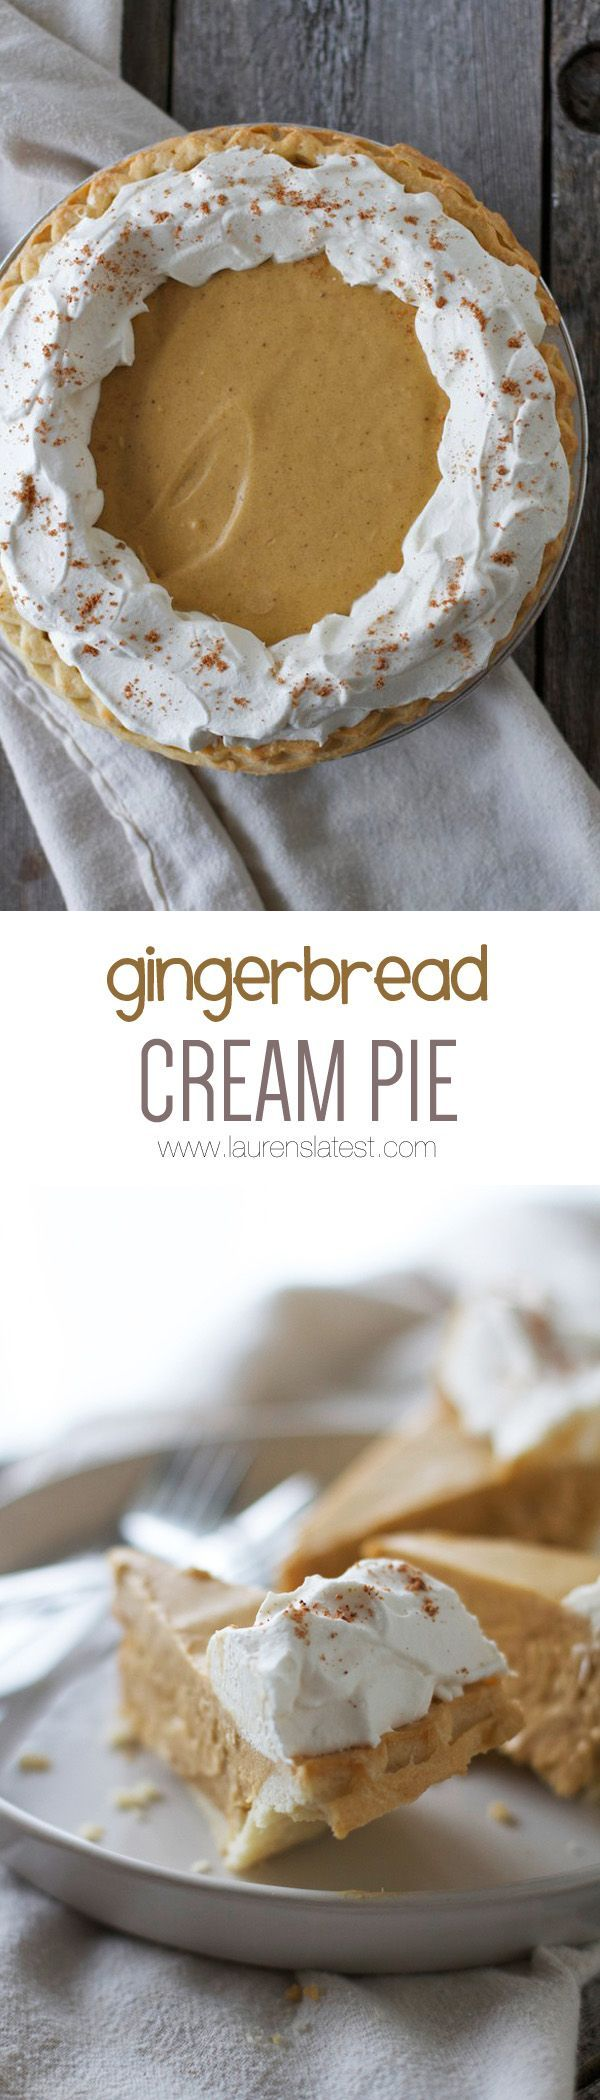 The crazy thing about this Gingerbread Cream Pie is it actually tastes like a soft and sweet gingerbread cookie in pie form. It's BANANAS. Also: it takes 10 minutes to whip up.